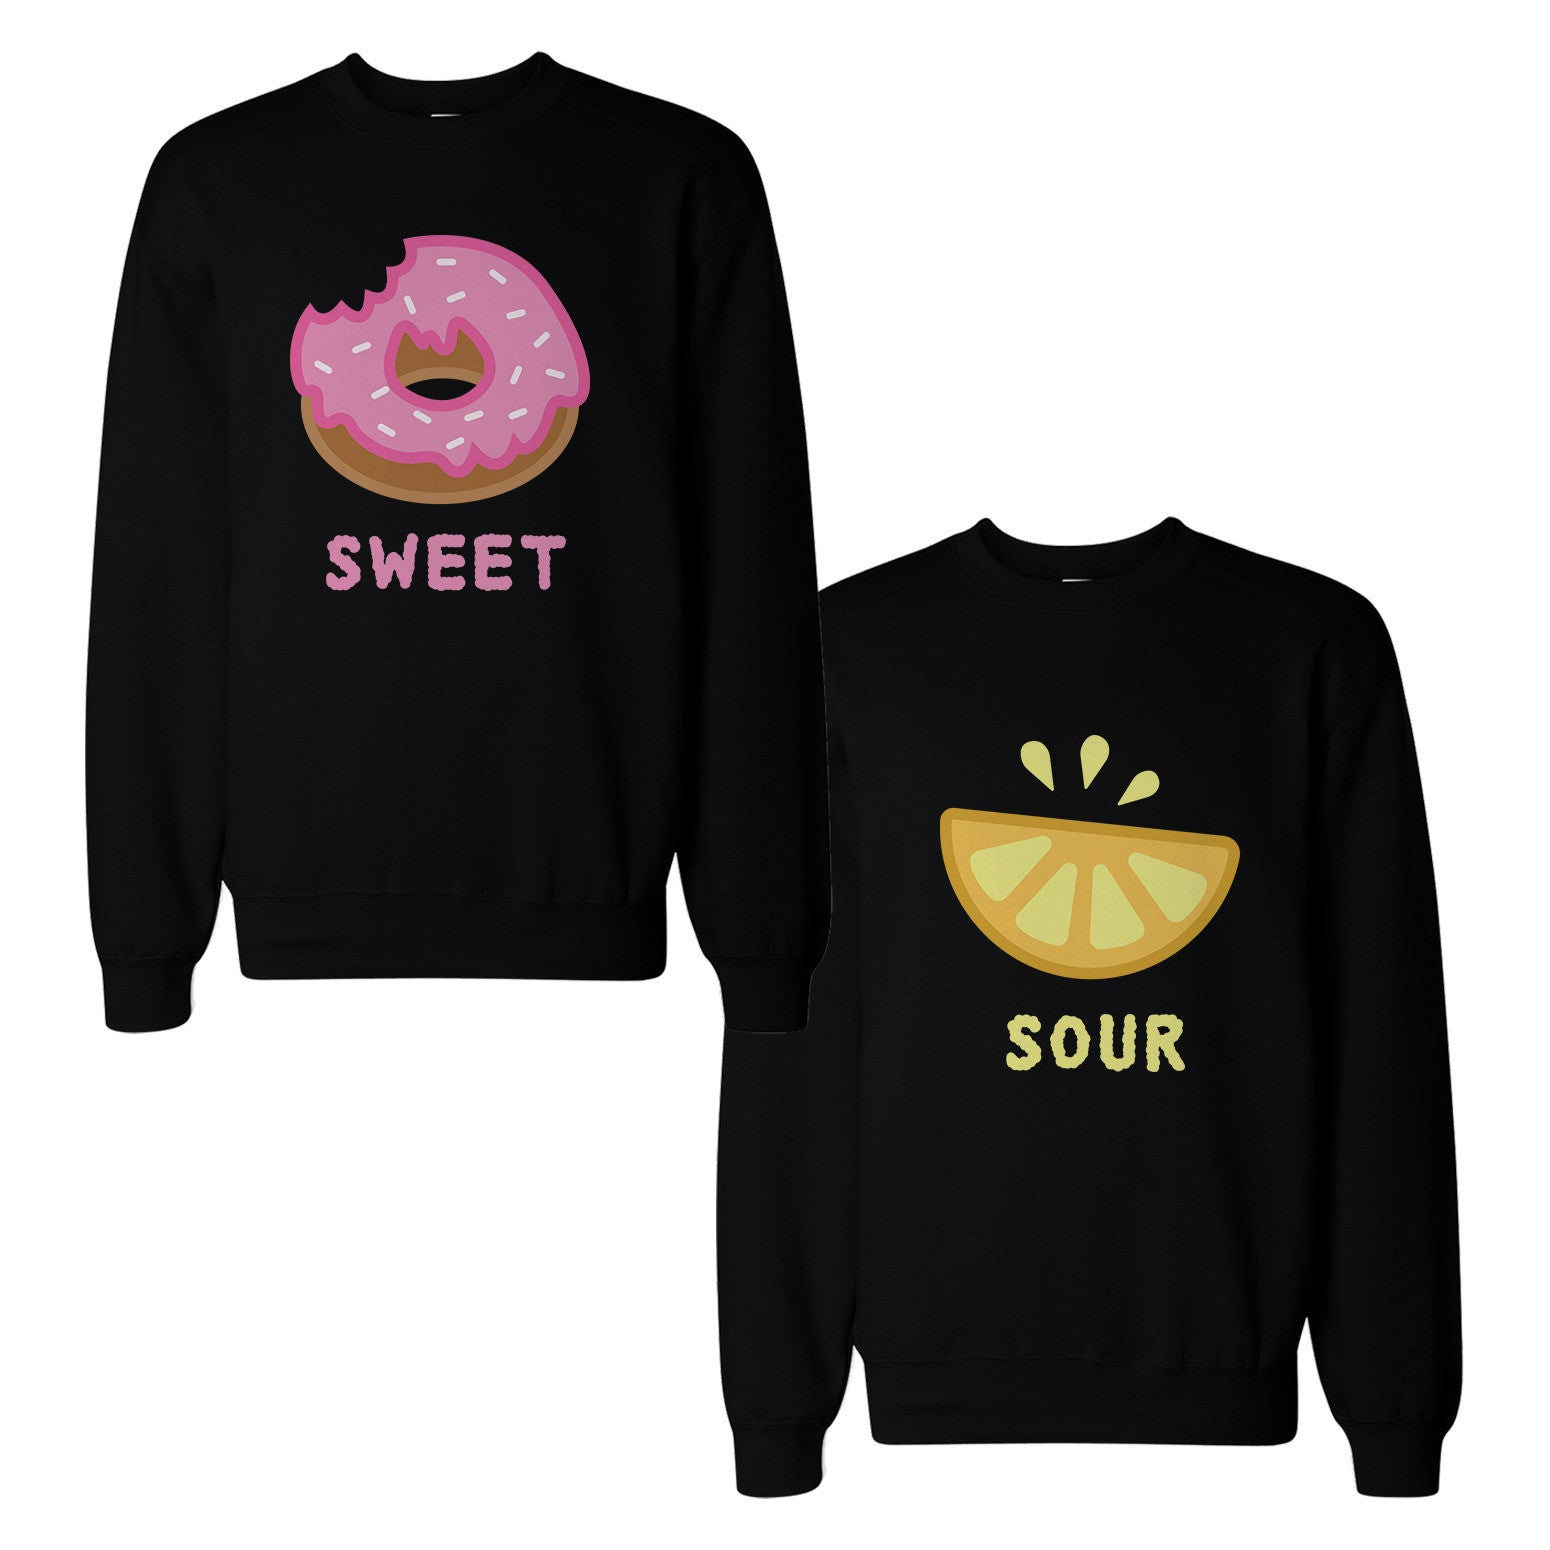 efa7b44385 Cute Sweet and Sour Funny BFF Matching Couple SweatShirts for Best ...